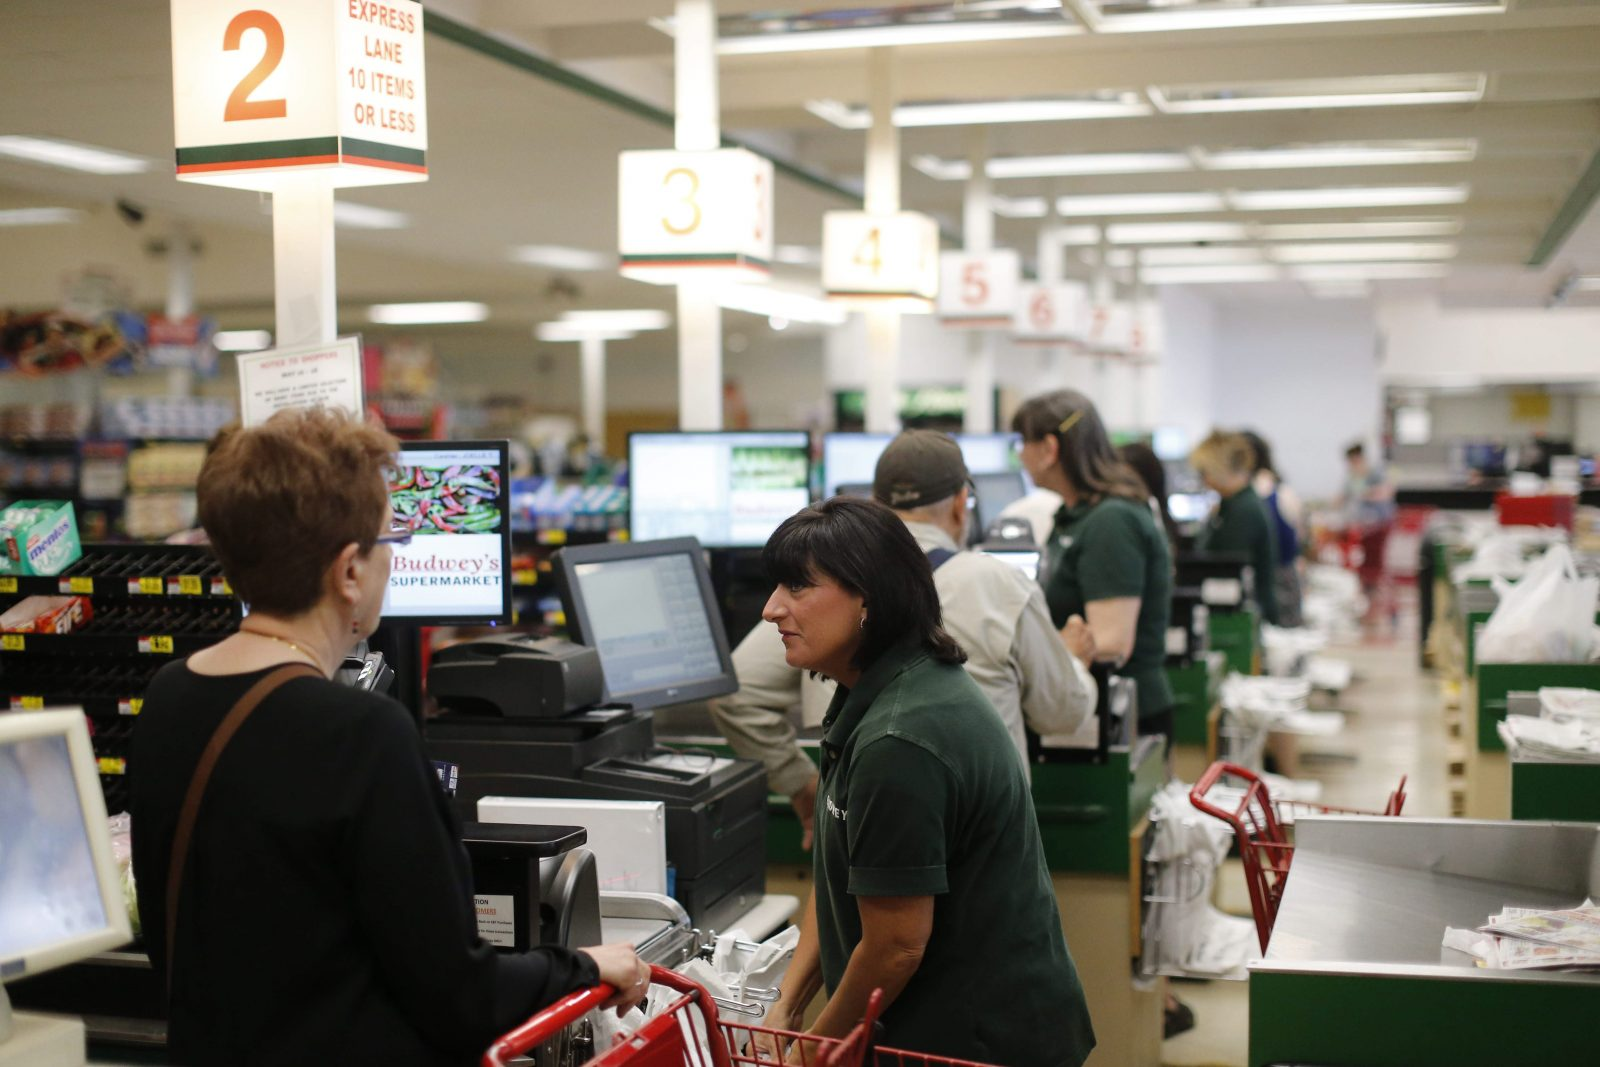 According to new federal data, incomes in the Buffalo Niagara region grew by an average of $721 during 2014, to $42,864 after inflation. That works out to almost $14 a week in added spending power. (Derek Gee/News file photo)